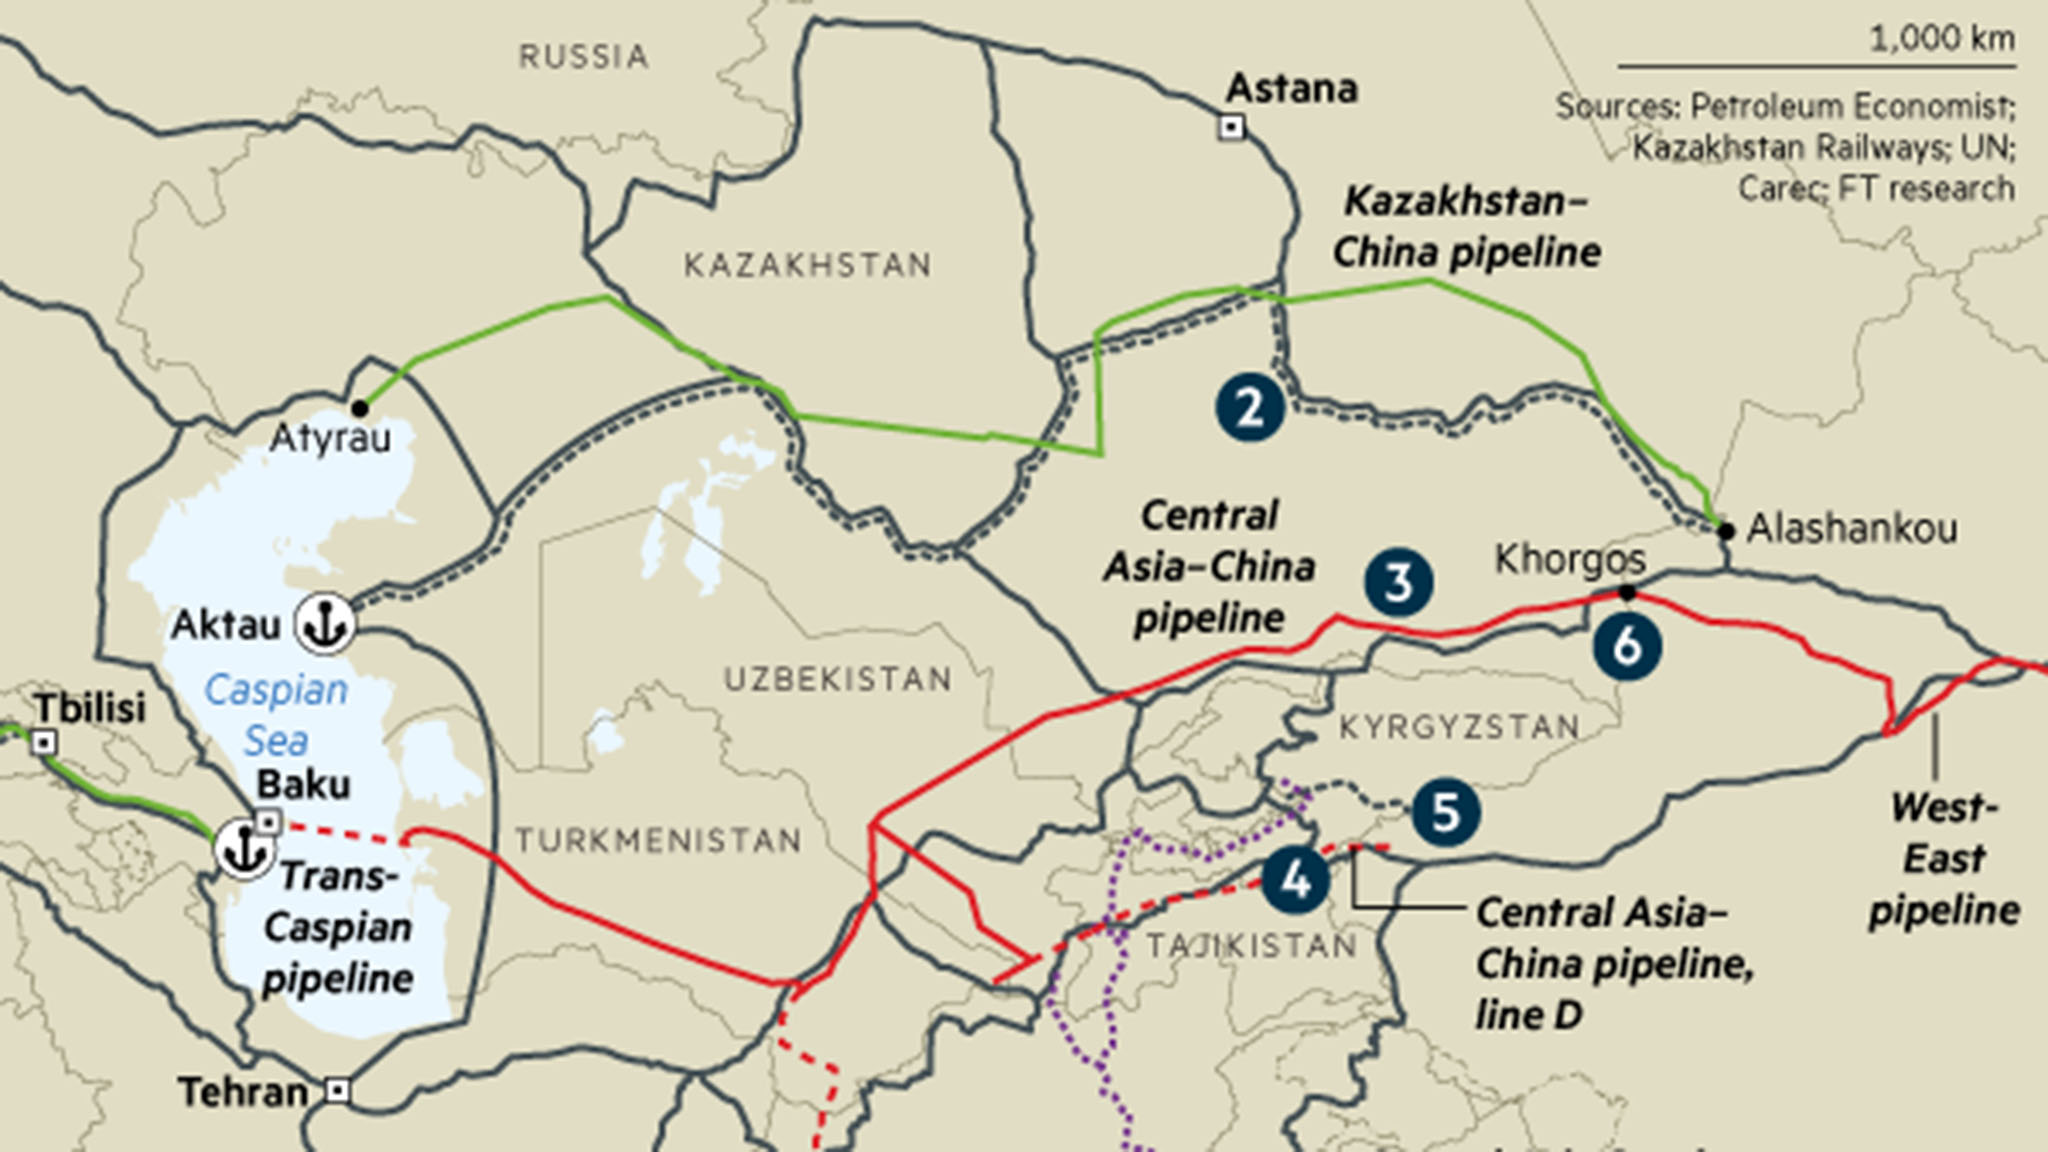 fb2c5c5634657 06a382f8-15f1-11e6-9d98-00386a18e39d.jpg. The Central Asia-China gas  pipeline ...